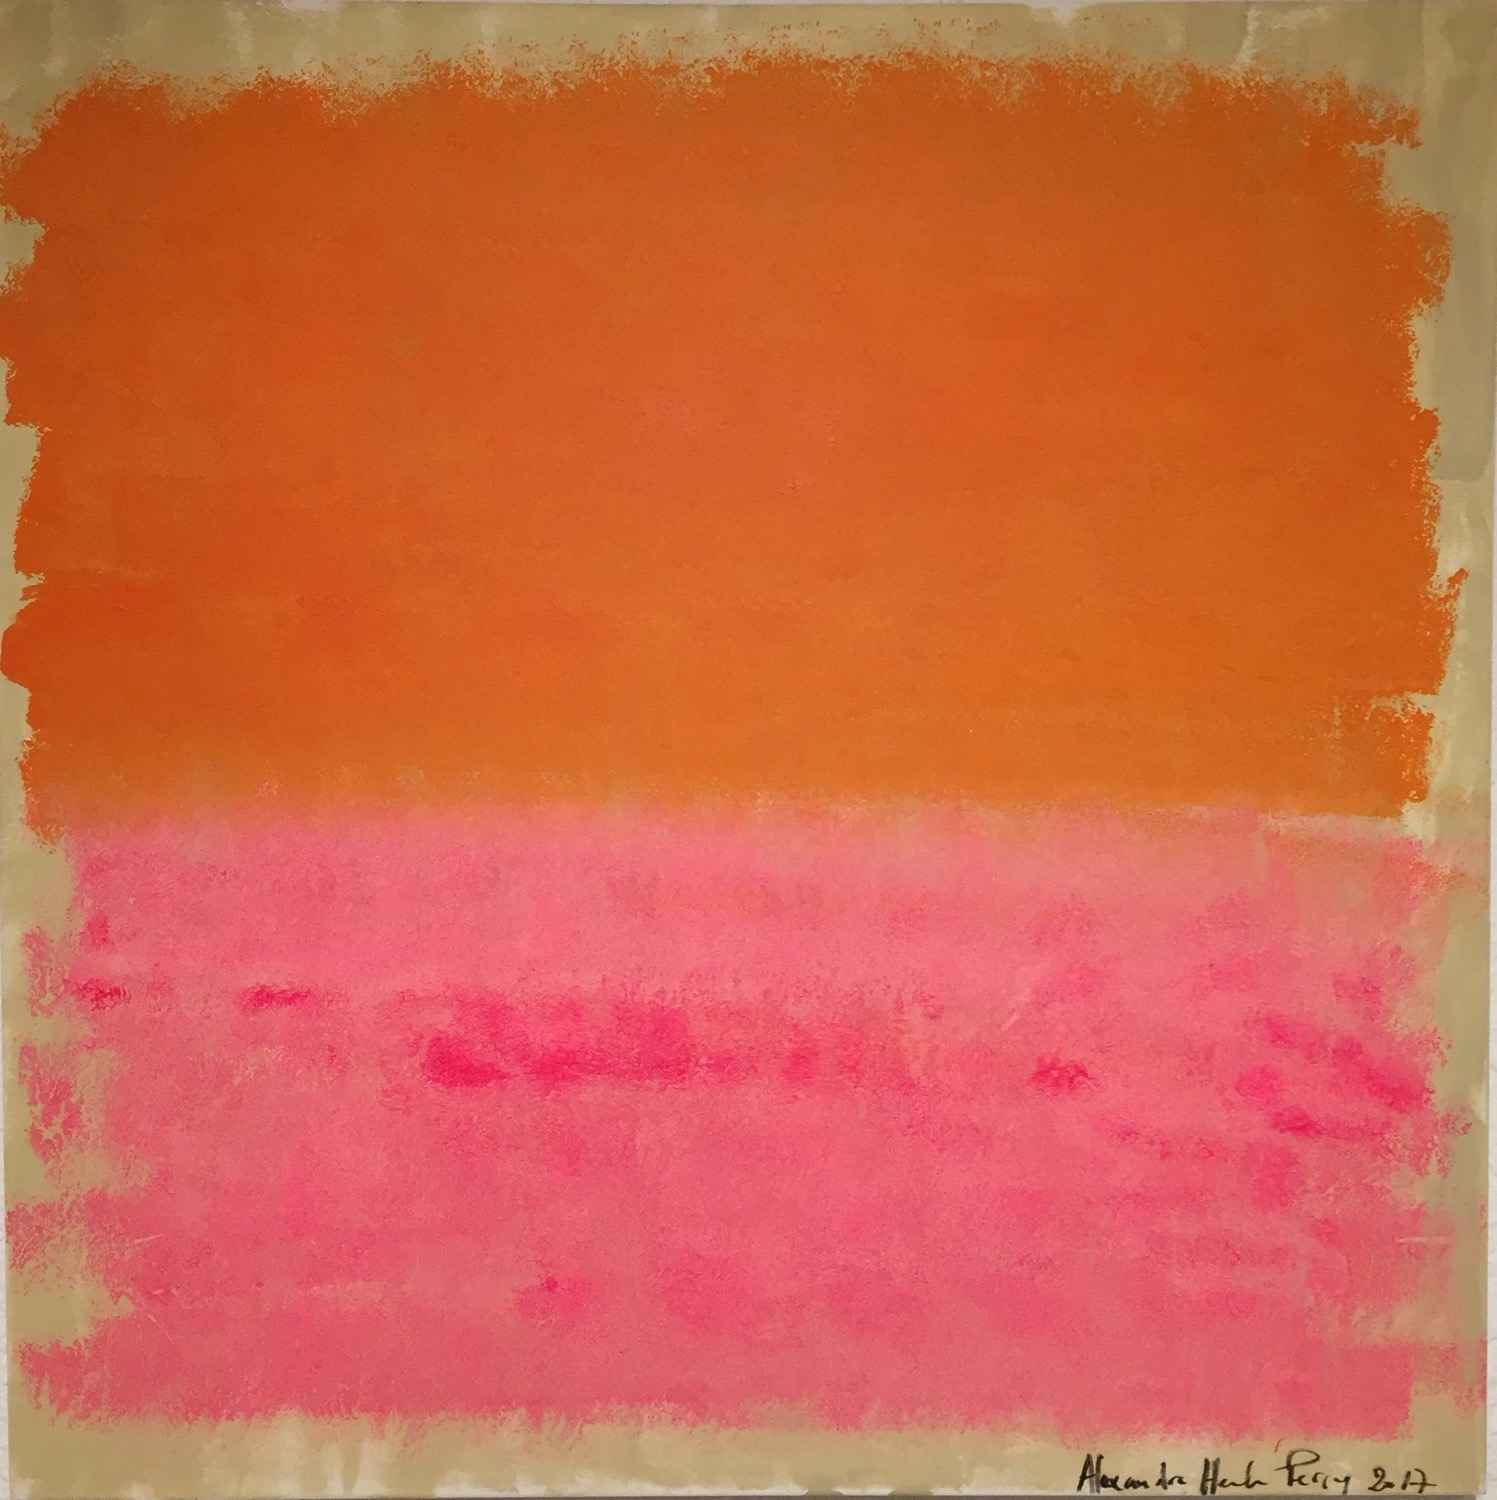 Fiery Pink 2 by  Alexandra HEUMBER PERRY - Masterpiece Online